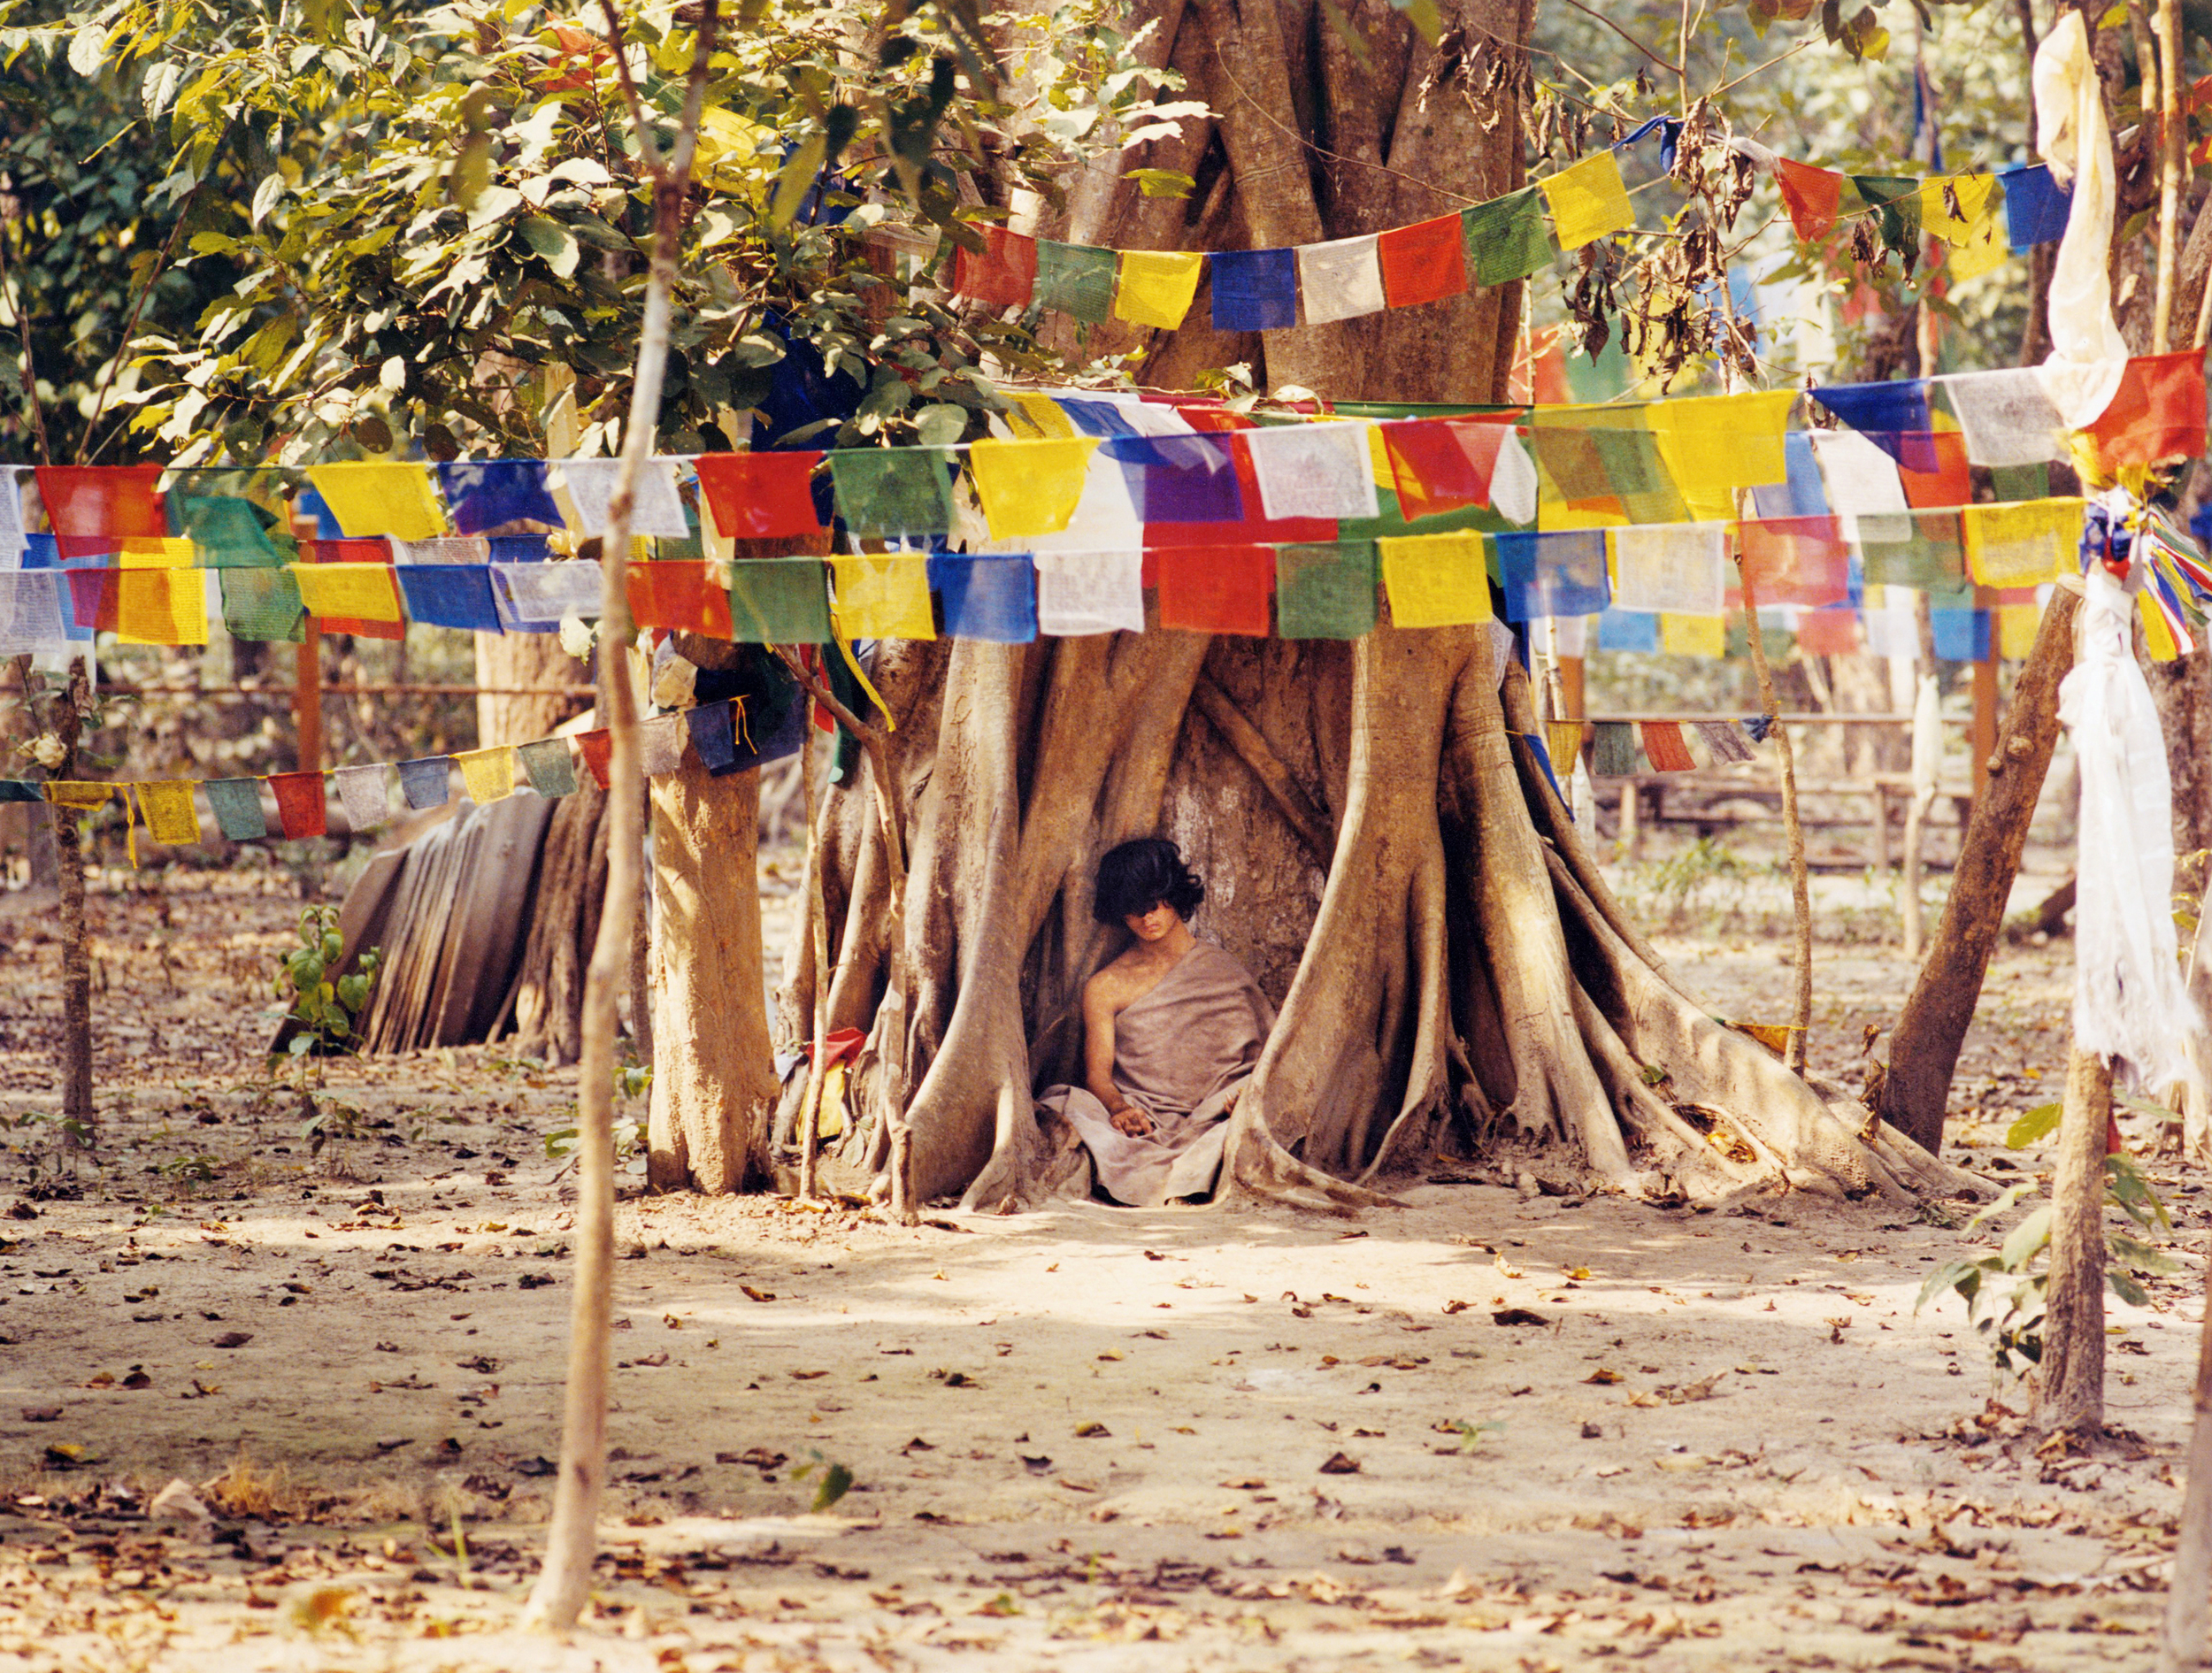 """The """"Buddha Boy"""" Ram Behadur Bamjan - rumored to be the Buddha reincarnate, this sixteen-year-old boy meditated motionless under a pepal tree in a forest in Southern Nepal for nearly 9 months in 2006 - Bara Region, Nepal"""